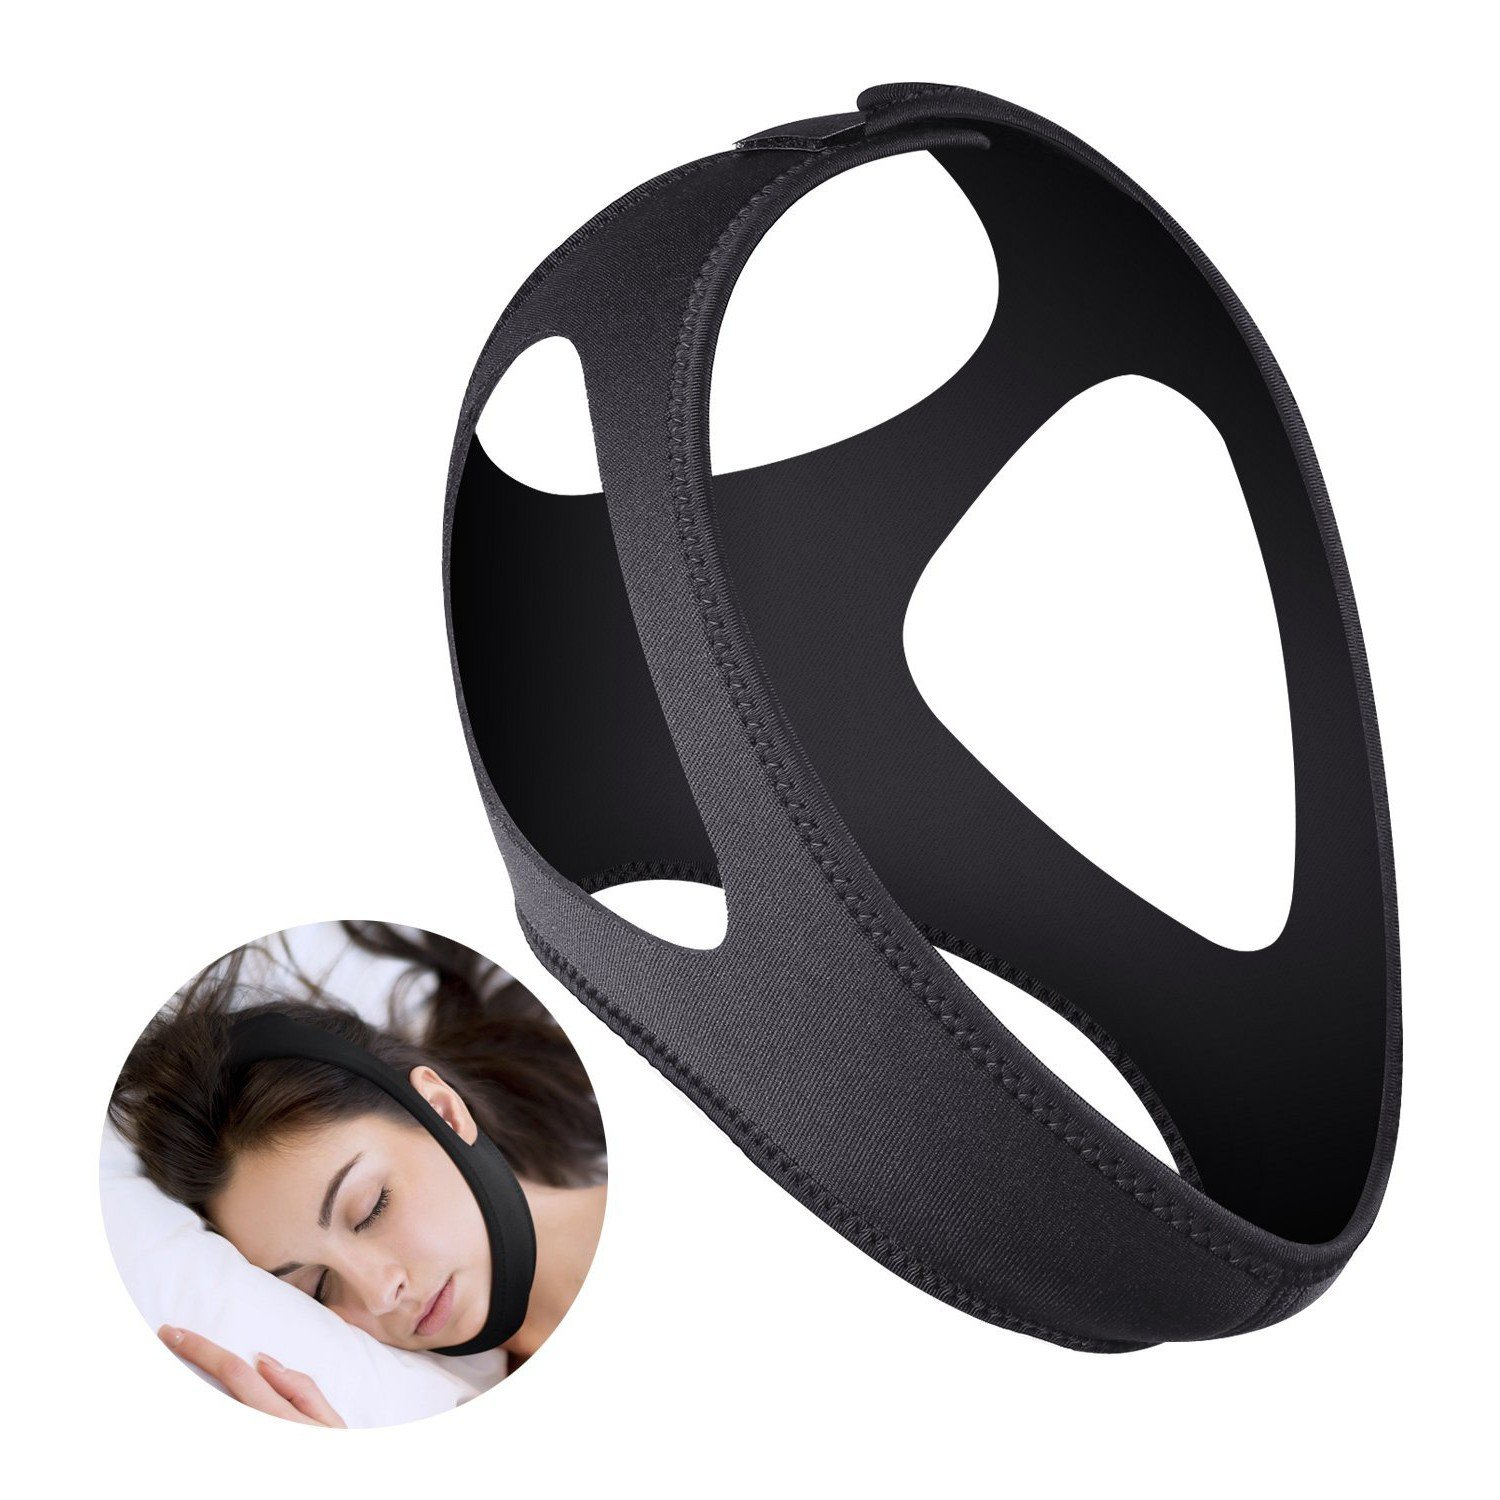 Stop Snoring Chin Strap - EasySleep Pro Anti Snore Chin Strap - Snoring Solution Device - Snore Stopper Relief Guard - Sleep Aid Jaw Strap Reduces Snoring - Allows a Restful Night's Sleep - Comfortably Prevents Snoring - 100% Lifetime Warranty.